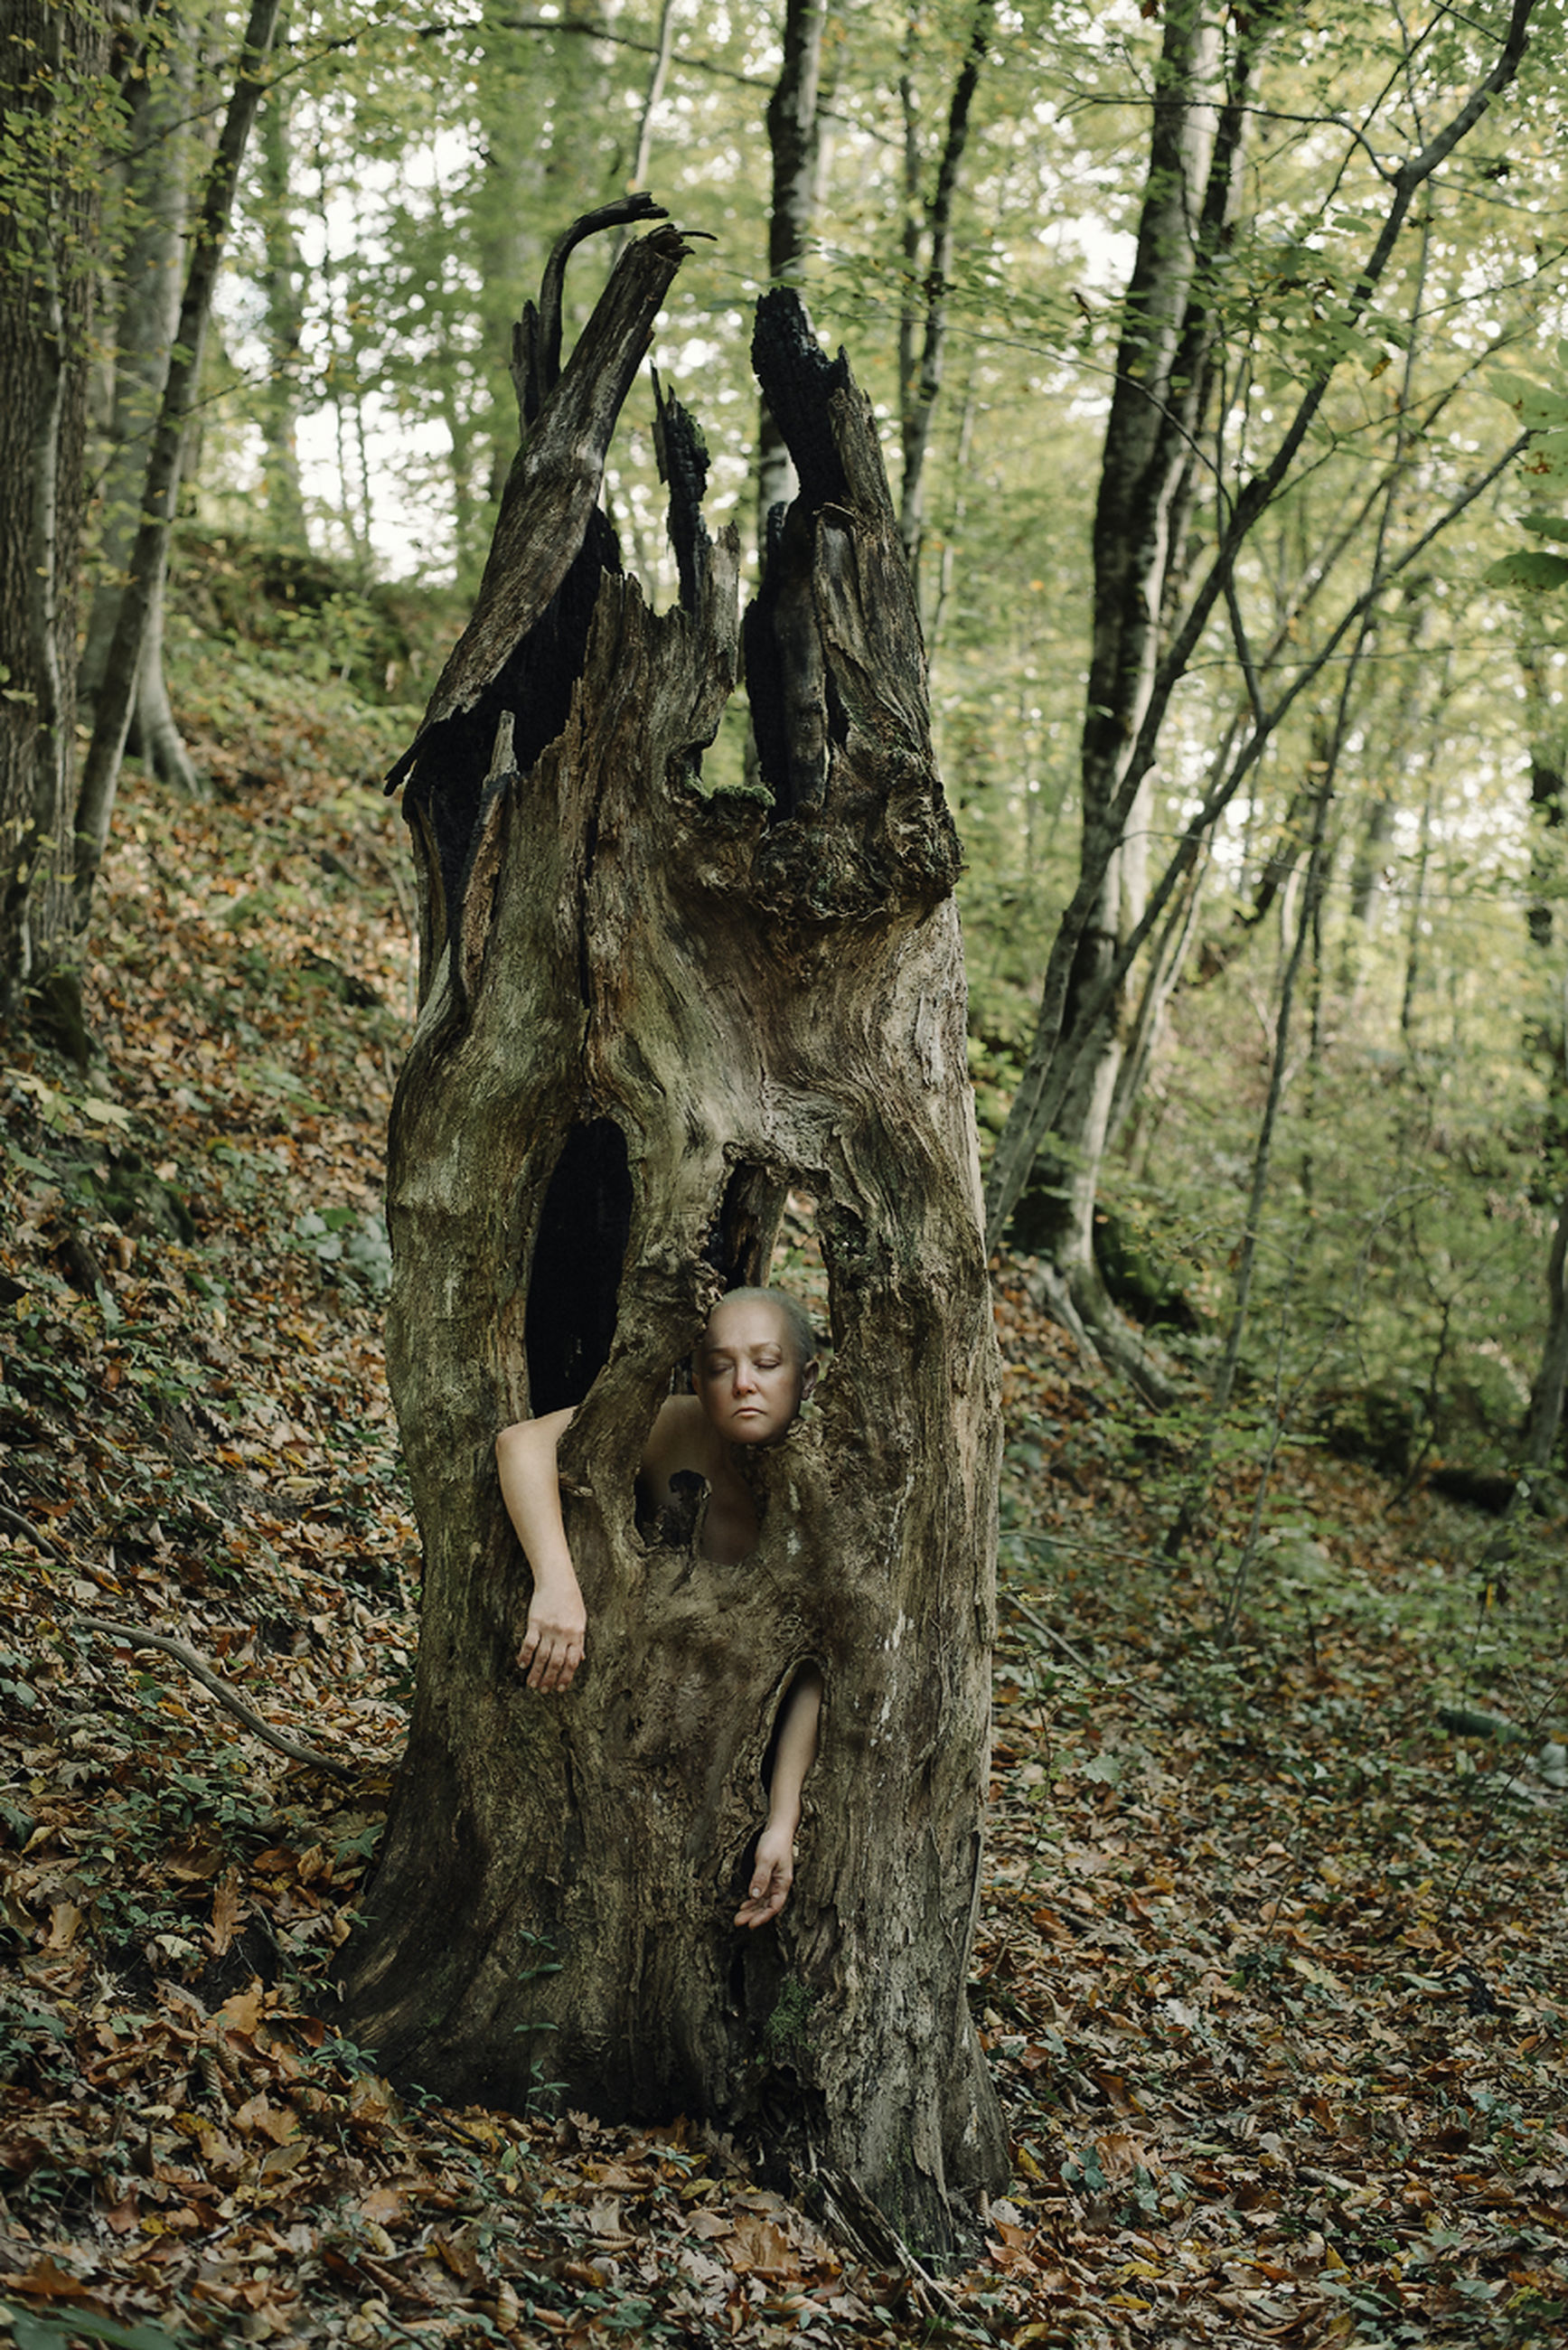 tree, forest, tree trunk, trunk, plant, land, day, nature, woodland, real people, leisure activity, one person, women, outdoors, lifestyles, human representation, full length, front view, bark